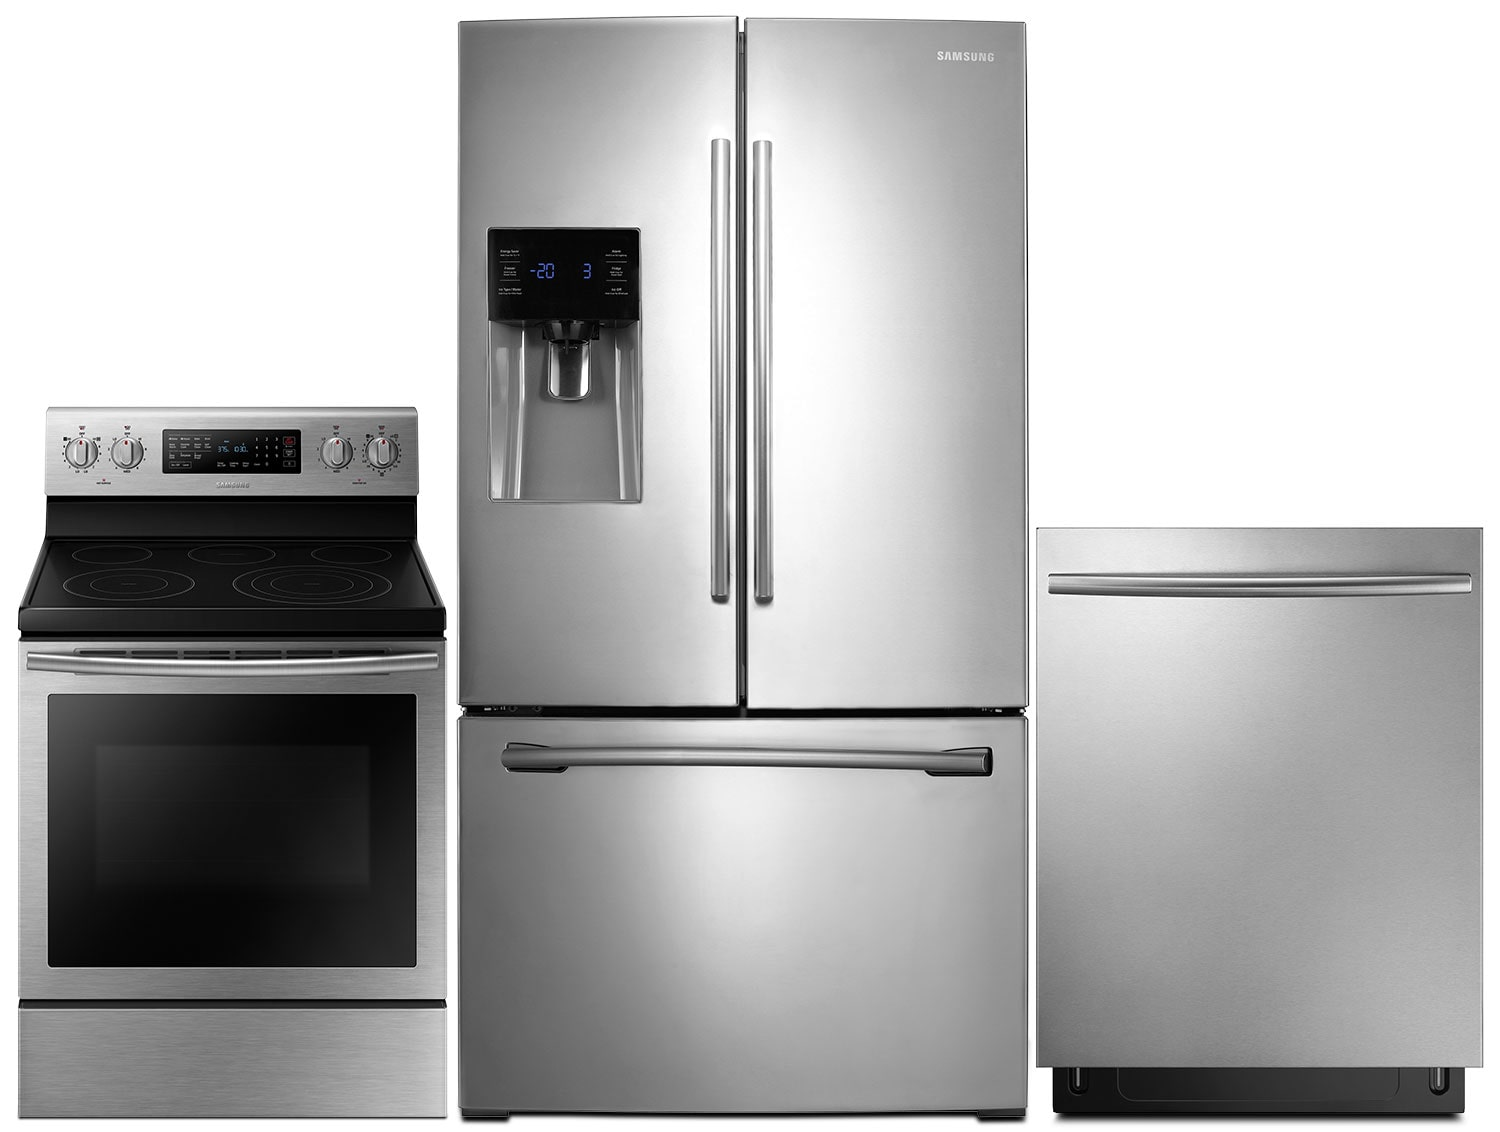 Samsung 5 9 Cu Ft Freestanding Electric Range